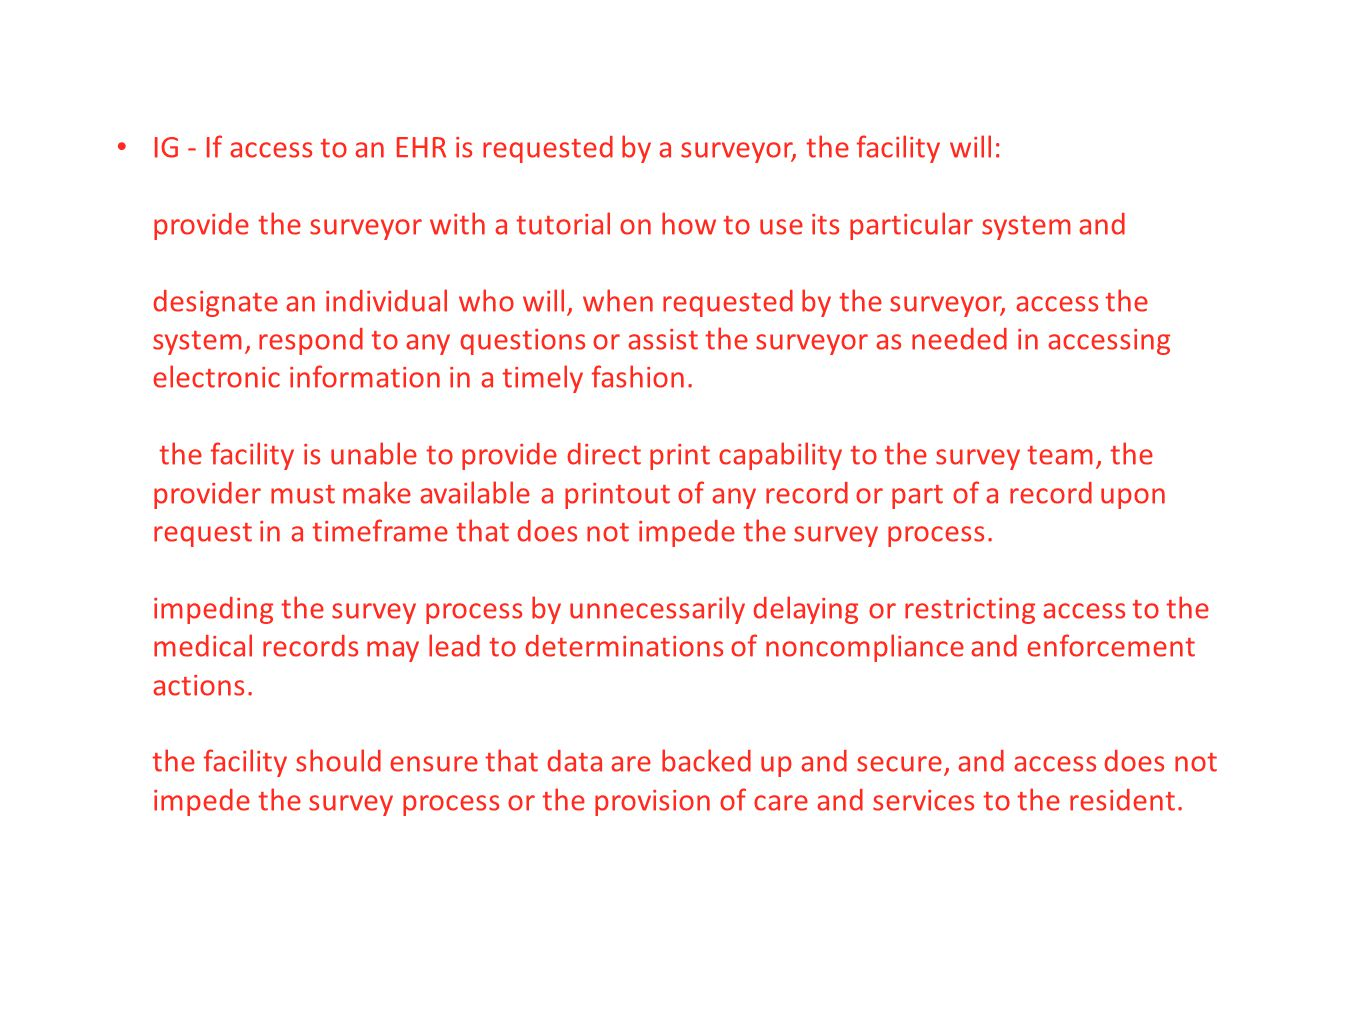 IG - If access to an EHR is requested by a surveyor, the facility will: provide the surveyor with a tutorial on how to use its particular system and designate an individual who will, when requested by the surveyor, access the system, respond to any questions or assist the surveyor as needed in accessing electronic information in a timely fashion. the facility is unable to provide direct print capability to the survey team, the provider must make available a printout of any record or part of a record upon request in a timeframe that does not impede the survey process. impeding the survey process by unnecessarily delaying or restricting access to the medical records may lead to determinations of noncompliance and enforcement actions. the facility should ensure that data are backed up and secure, and access does not impede the survey process or the provision of care and services to the resident.